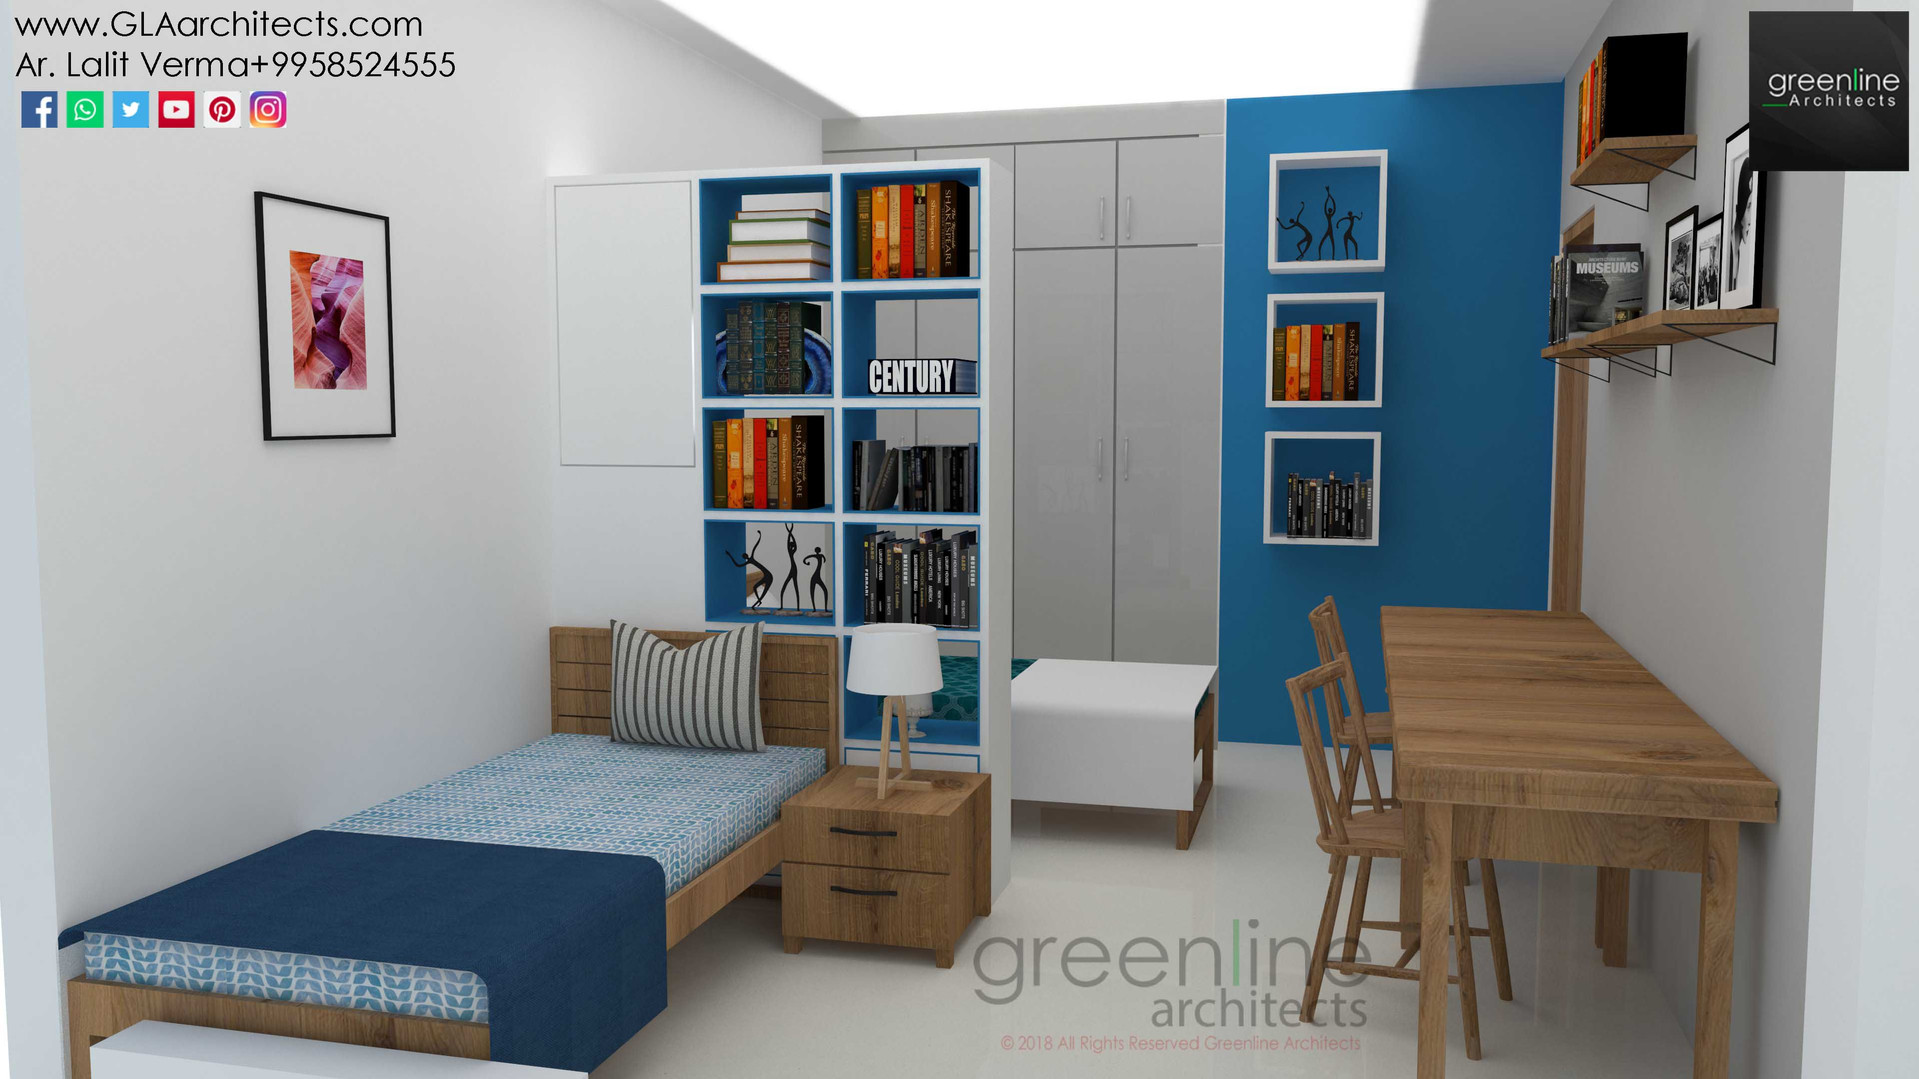 Livork_Hostel_Room_Interior_Design (5).j